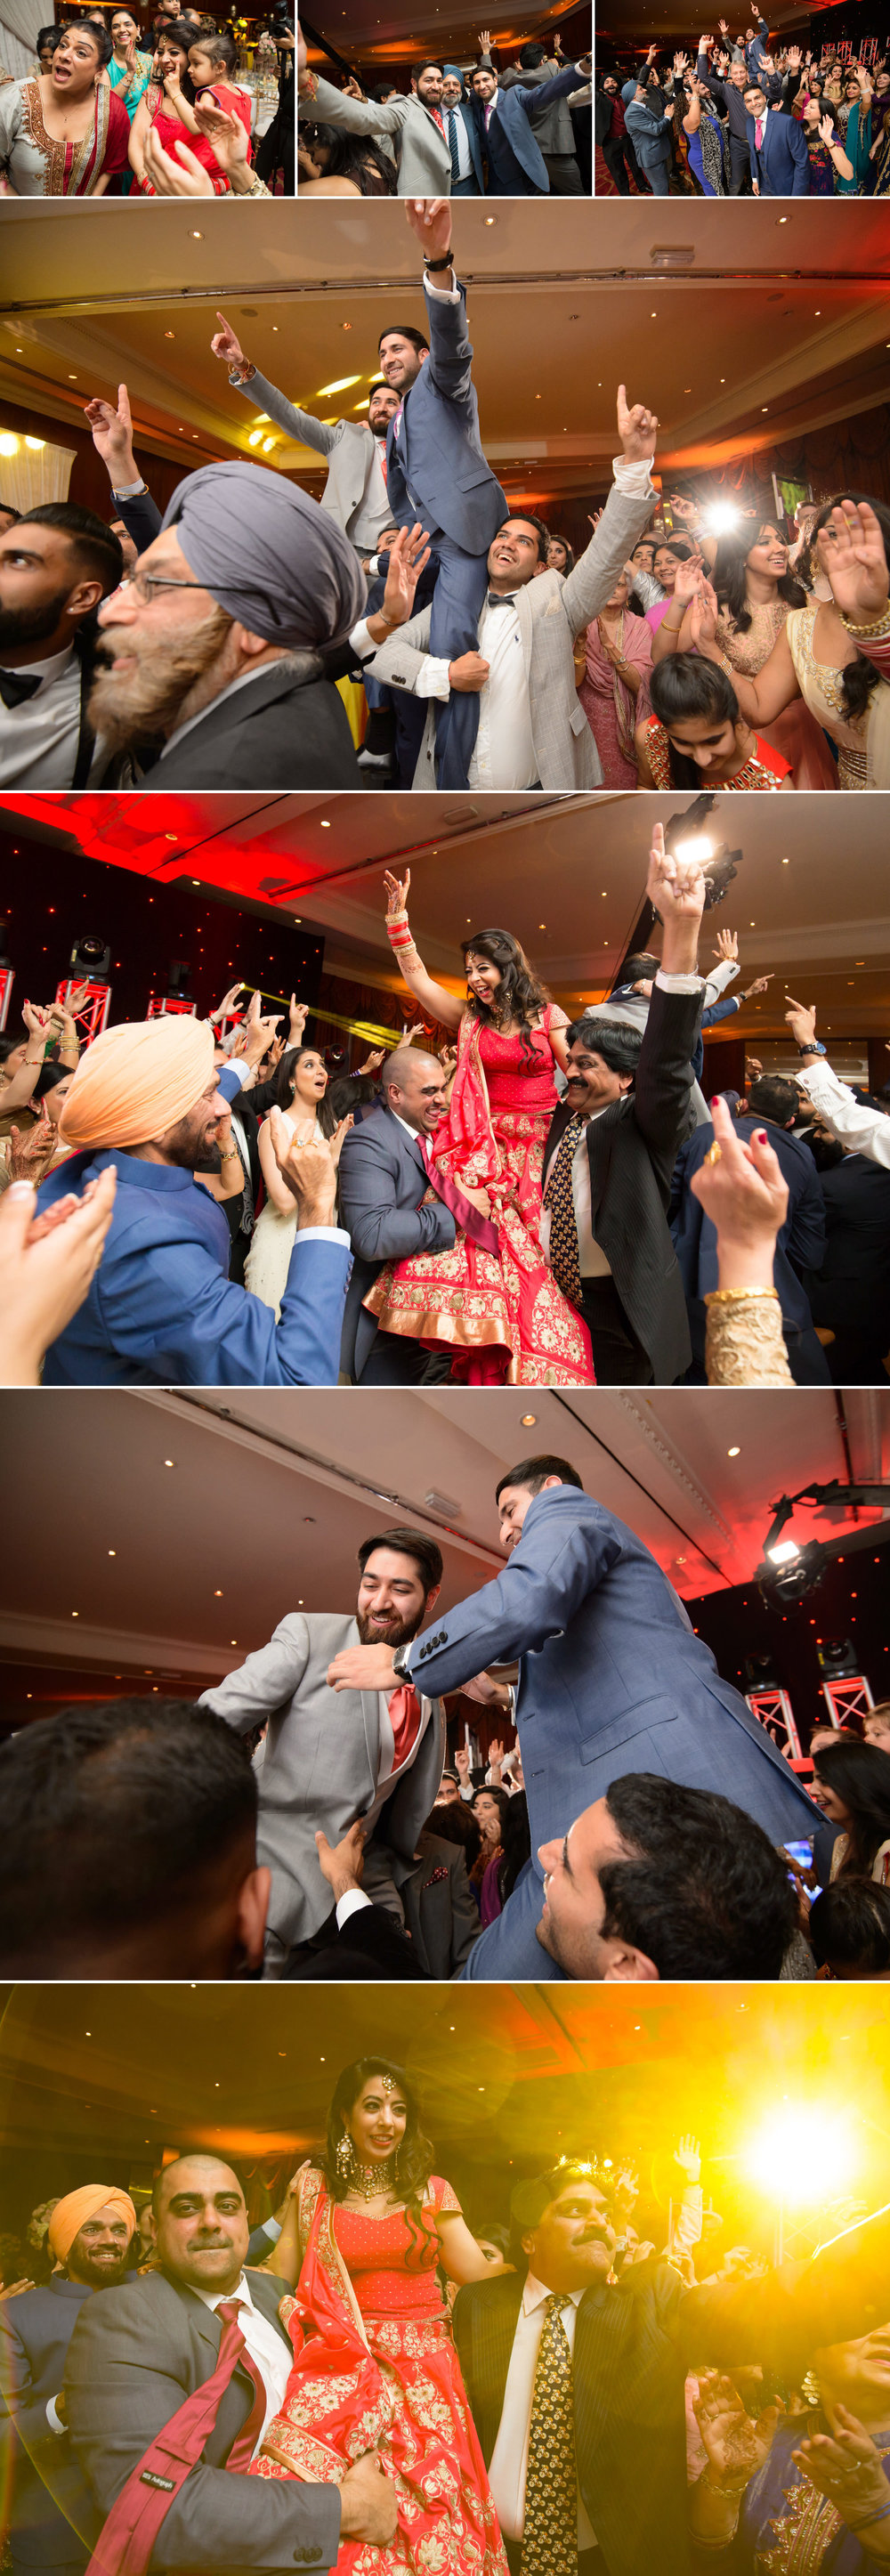 satnam photography sikh wedding reception radisson edwardian bath road london wedding photography-4